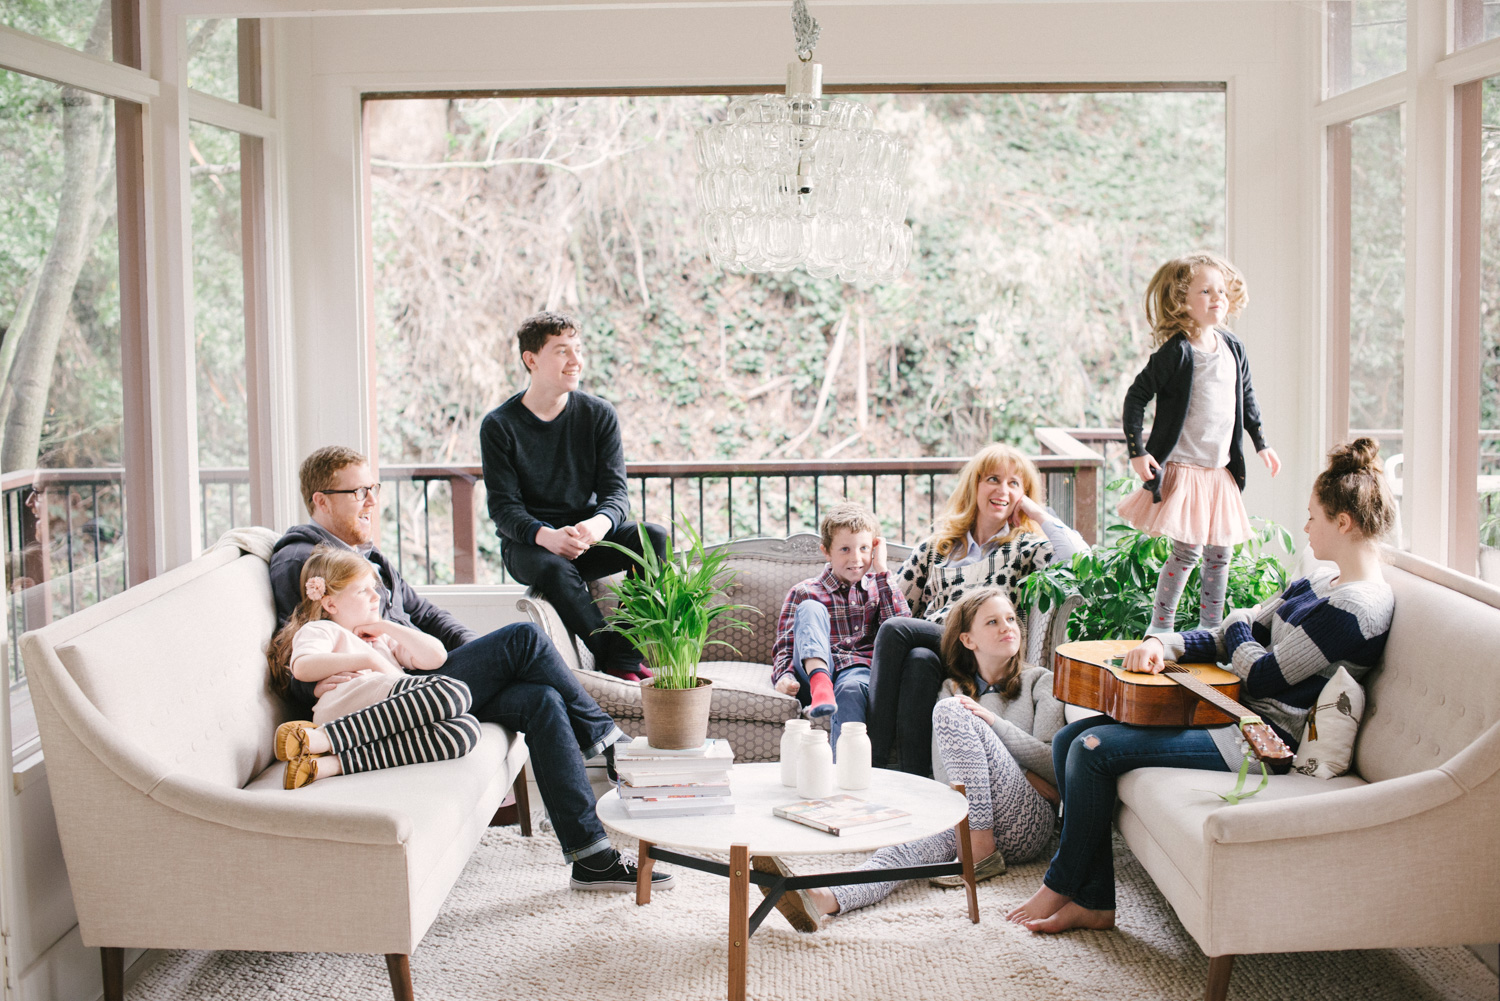 Home Design As Self Care An Interview With Design Mom